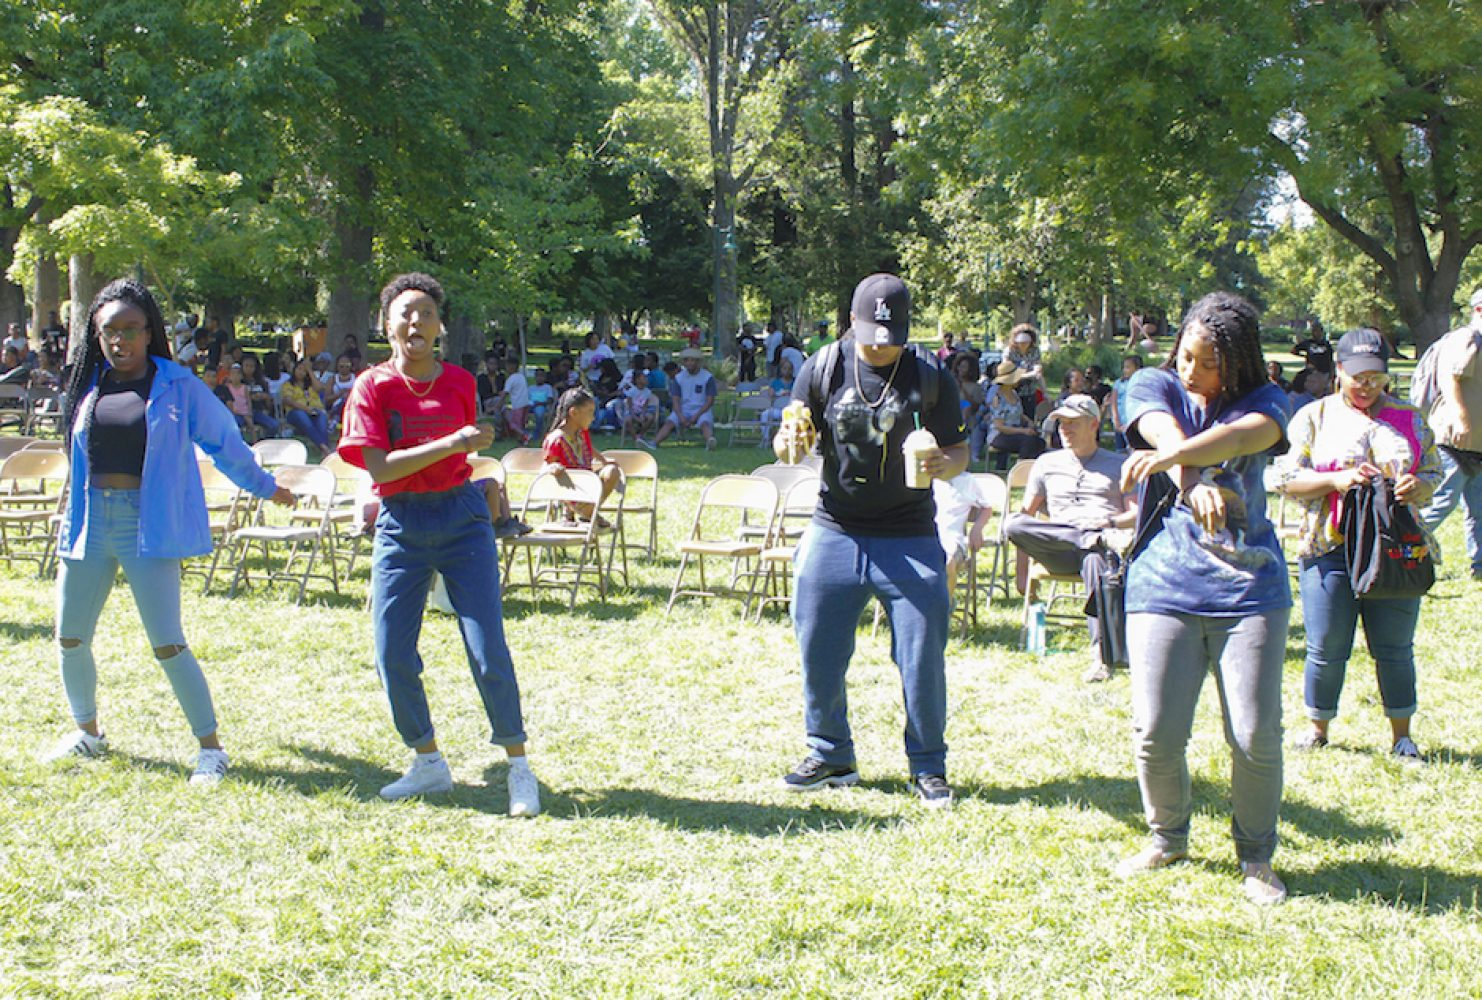 Sacramento State's first Black Family Day on April 29 feature live music, which leads to attendees dancing throughout the event in the Main Quad despite the heat. (Photo by Rin Carbin)